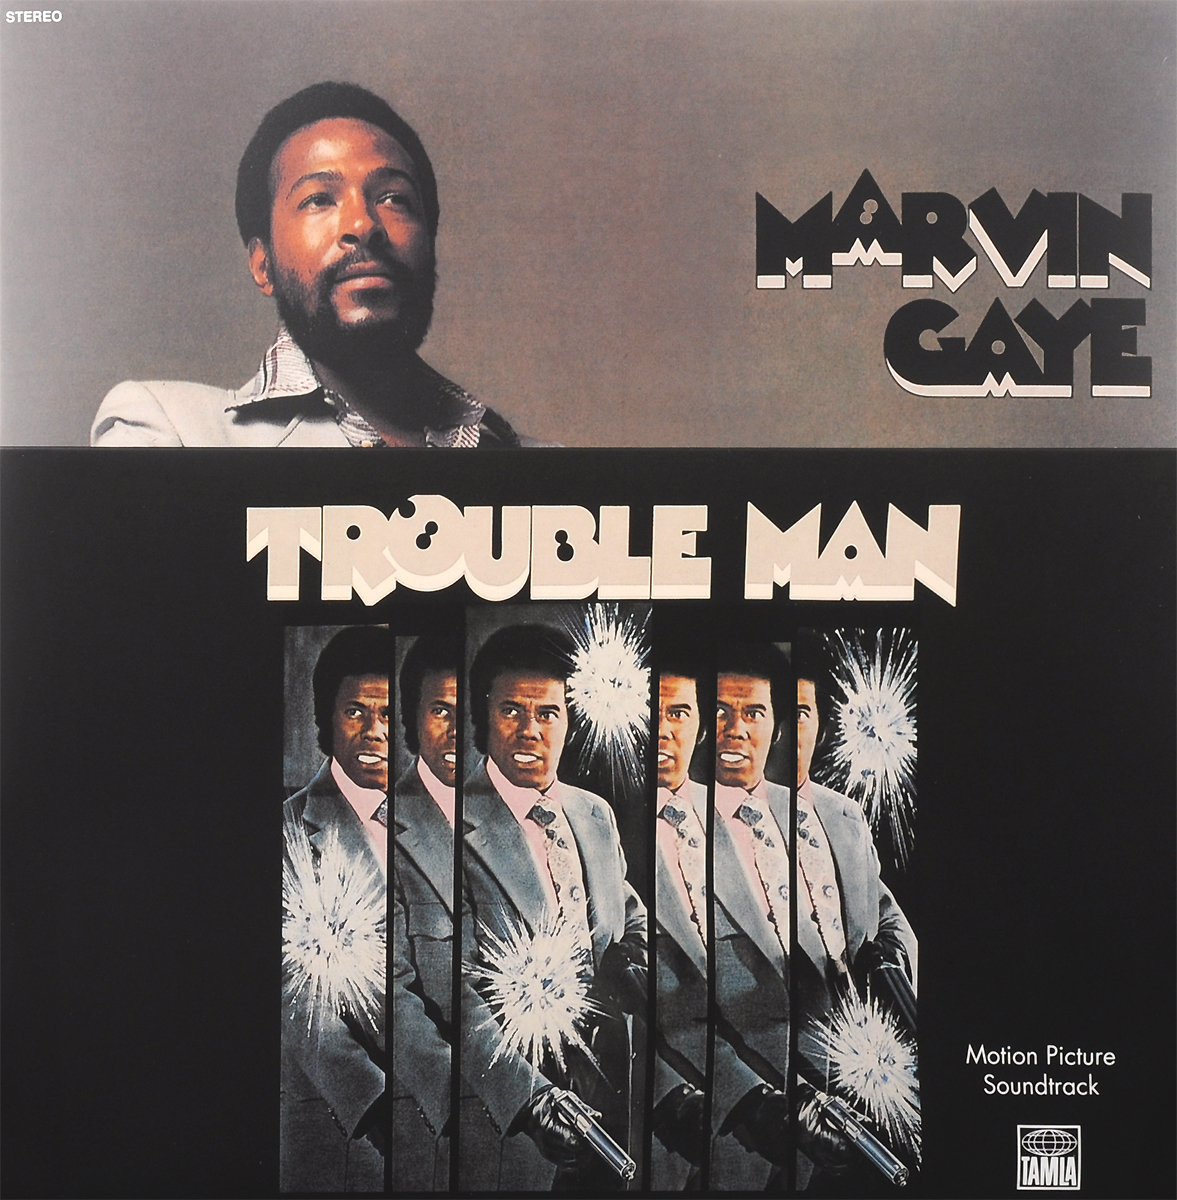 Марвин Гэй Marvin Gaye. Trouble Man. Motion Picture Soundtrack (LP) марвин гэй marvin gaye volume jne 1961 1965 7 lp